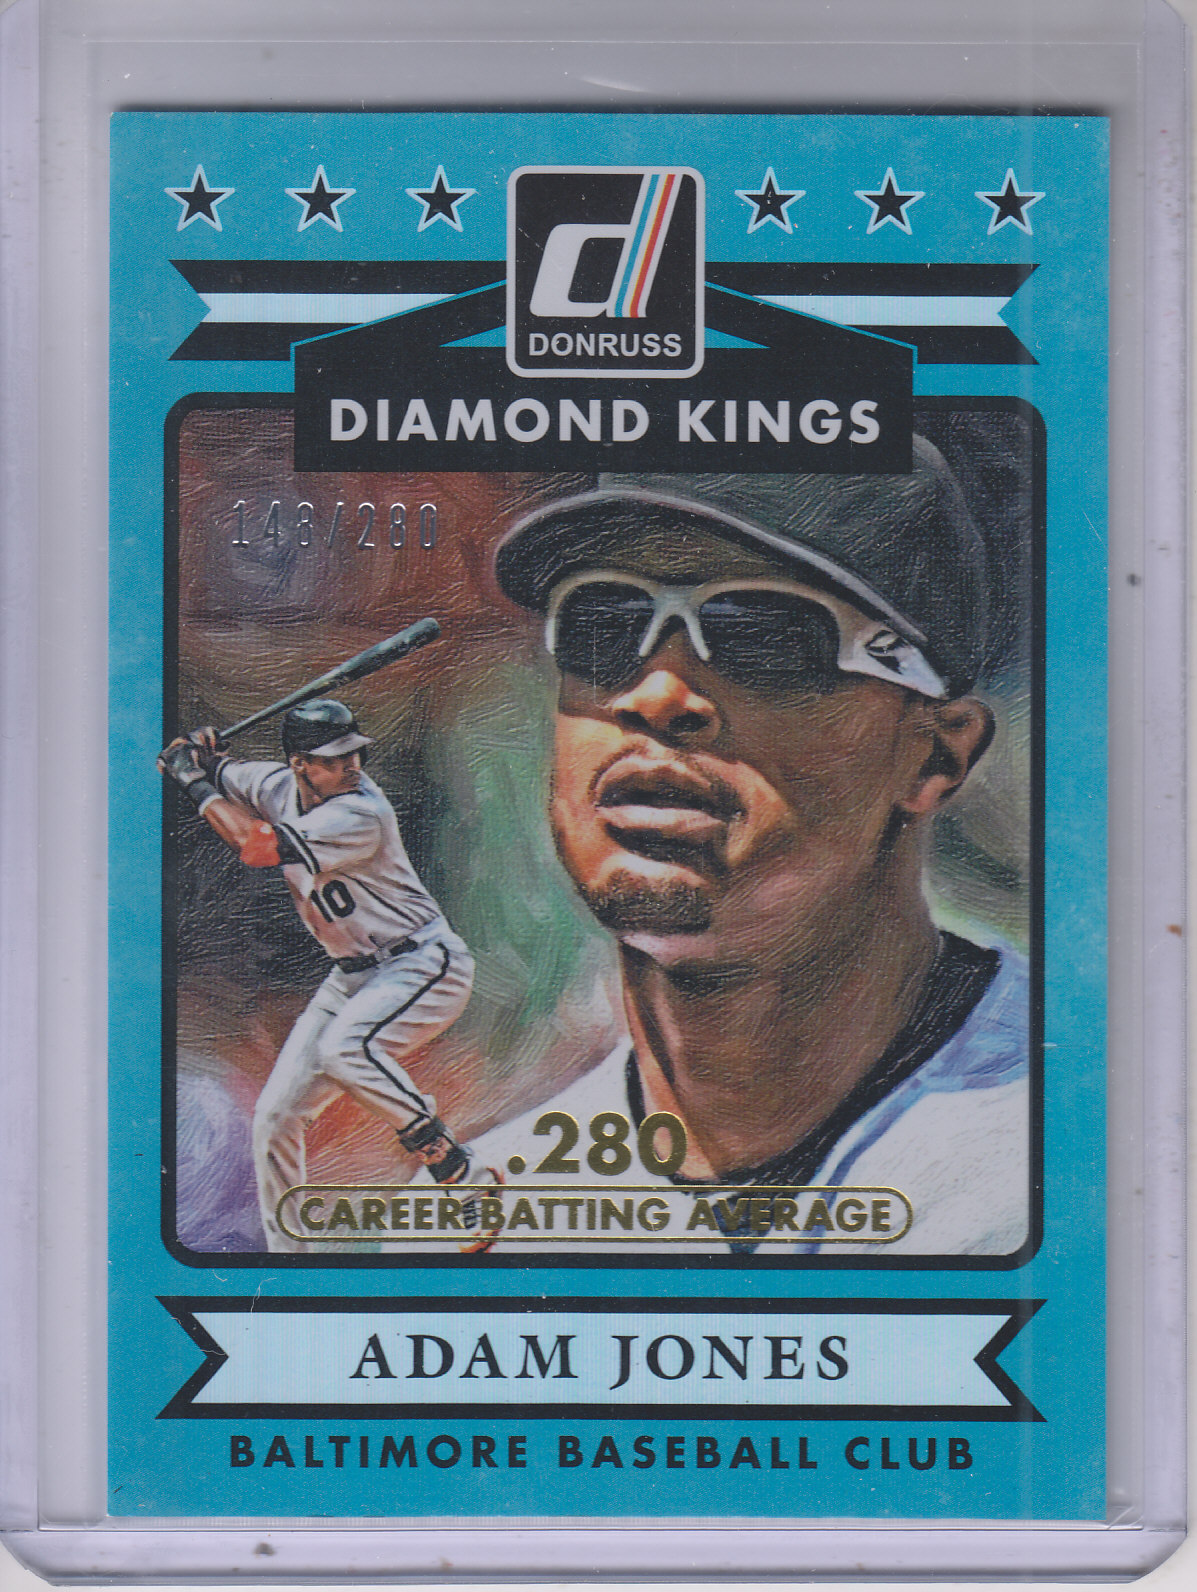 2015 Donruss Stat Line Career #3 Adam Jones DK/280